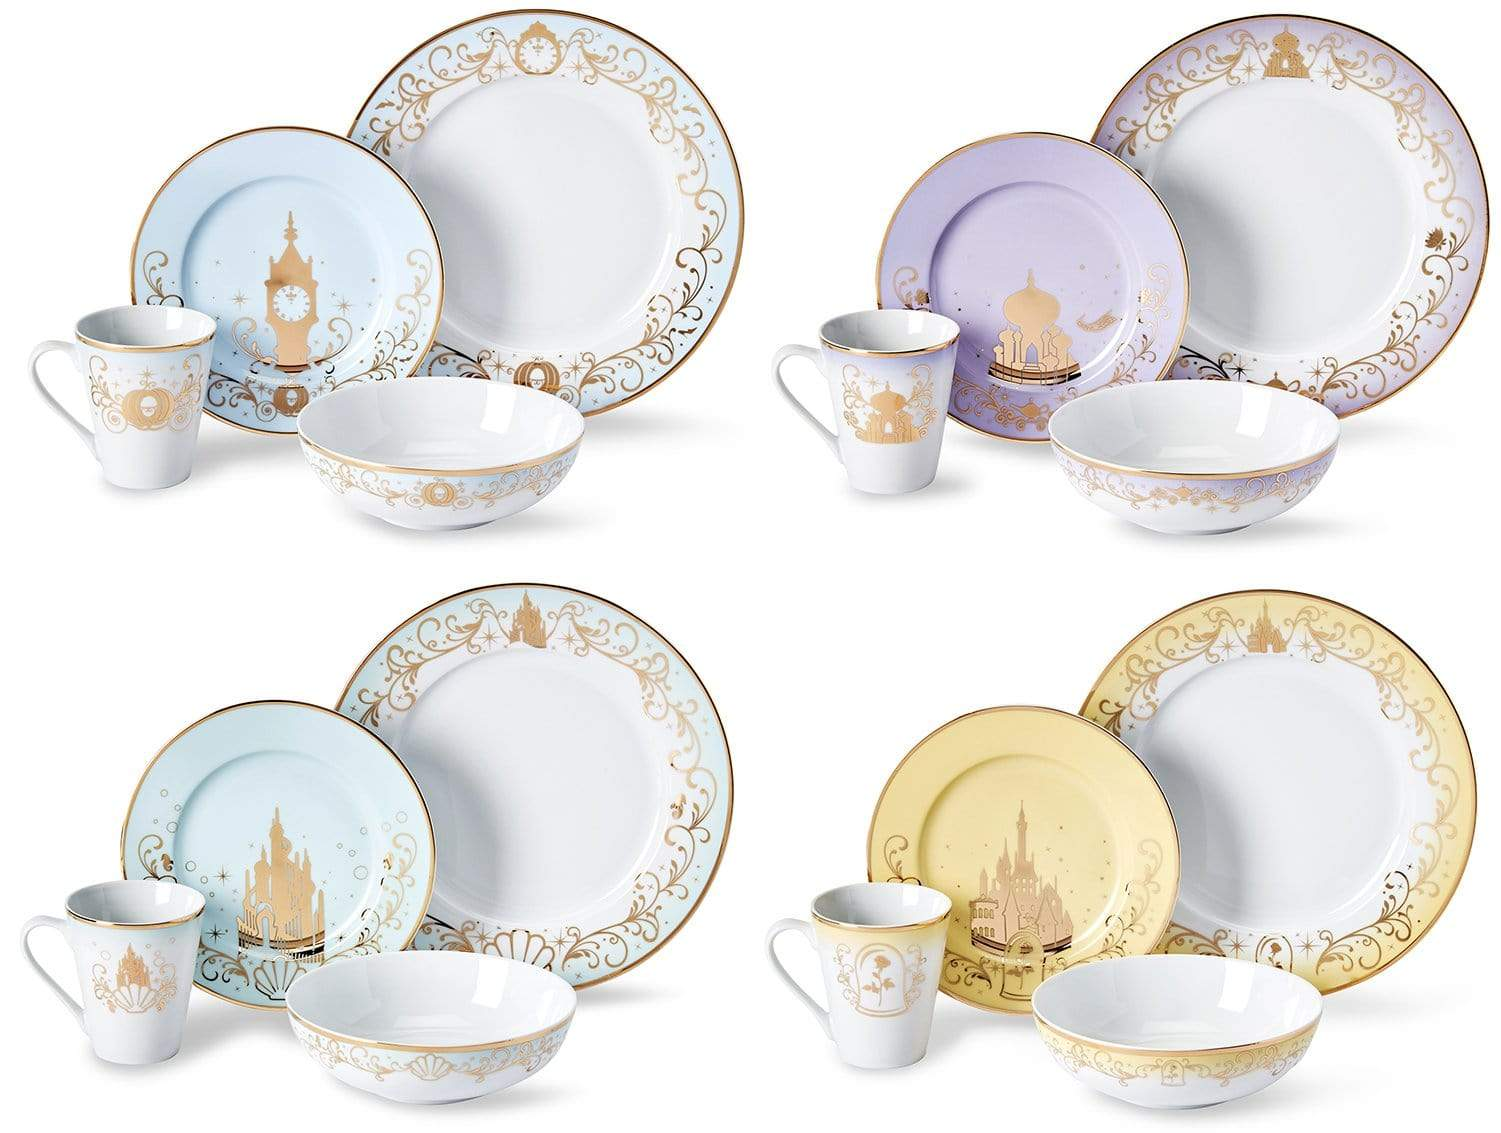 Elegant Disney Princess dinnerware collection features Frozen and Mulan 19